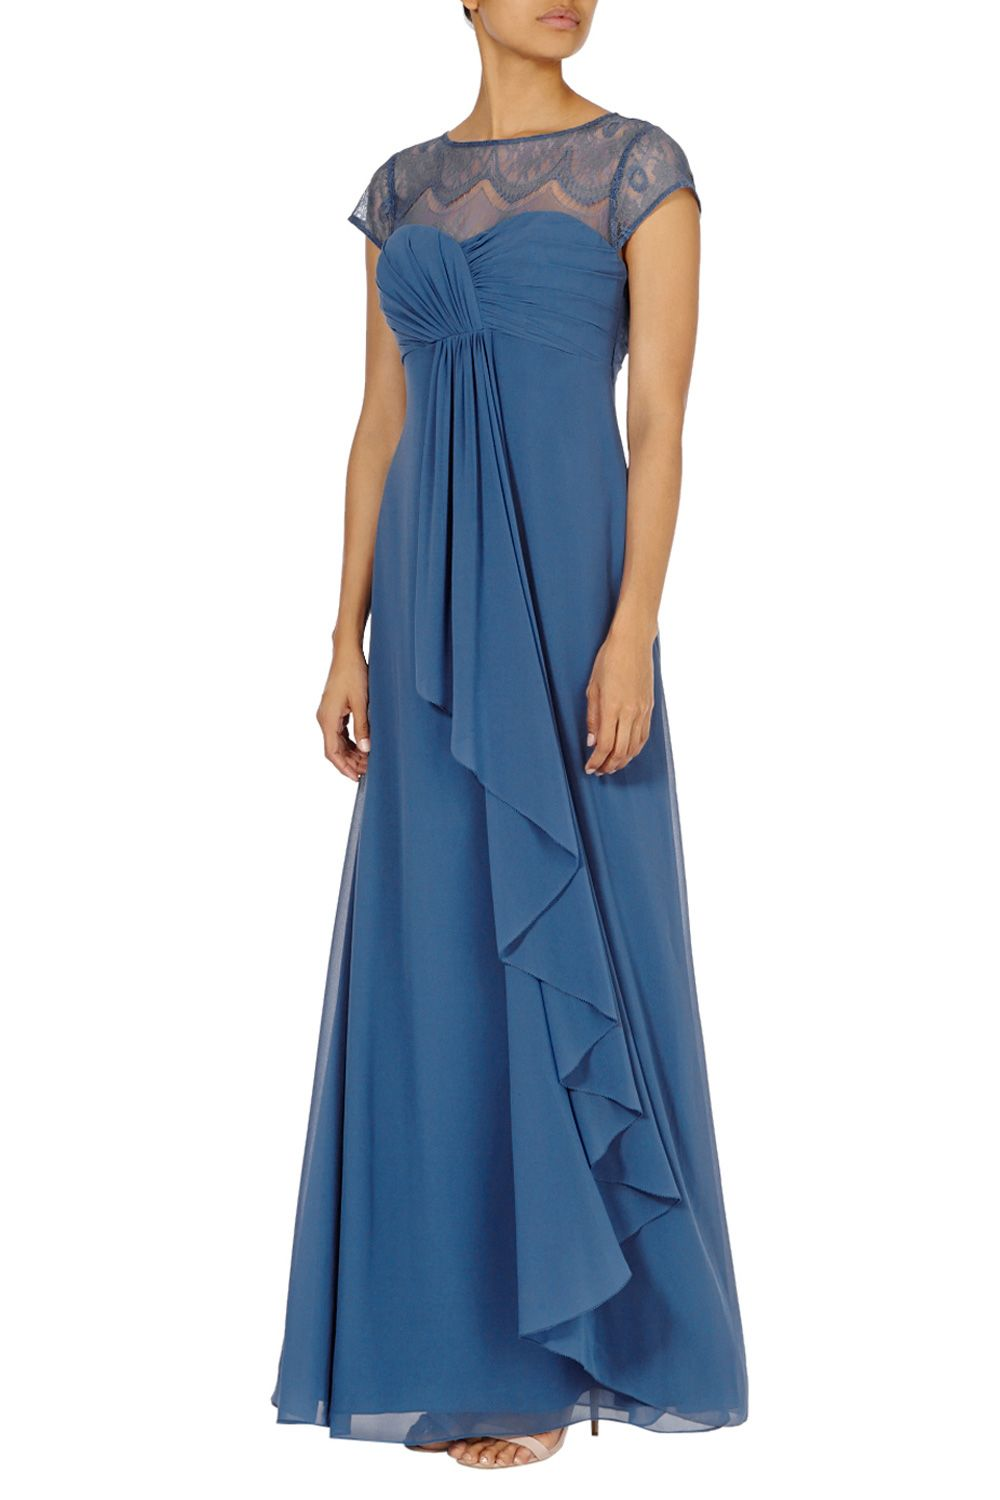 Brya rose maxi dress bridesmaids pinterest maxi dresses coast brya rose maxi dress at debenhams mobile ombrellifo Image collections